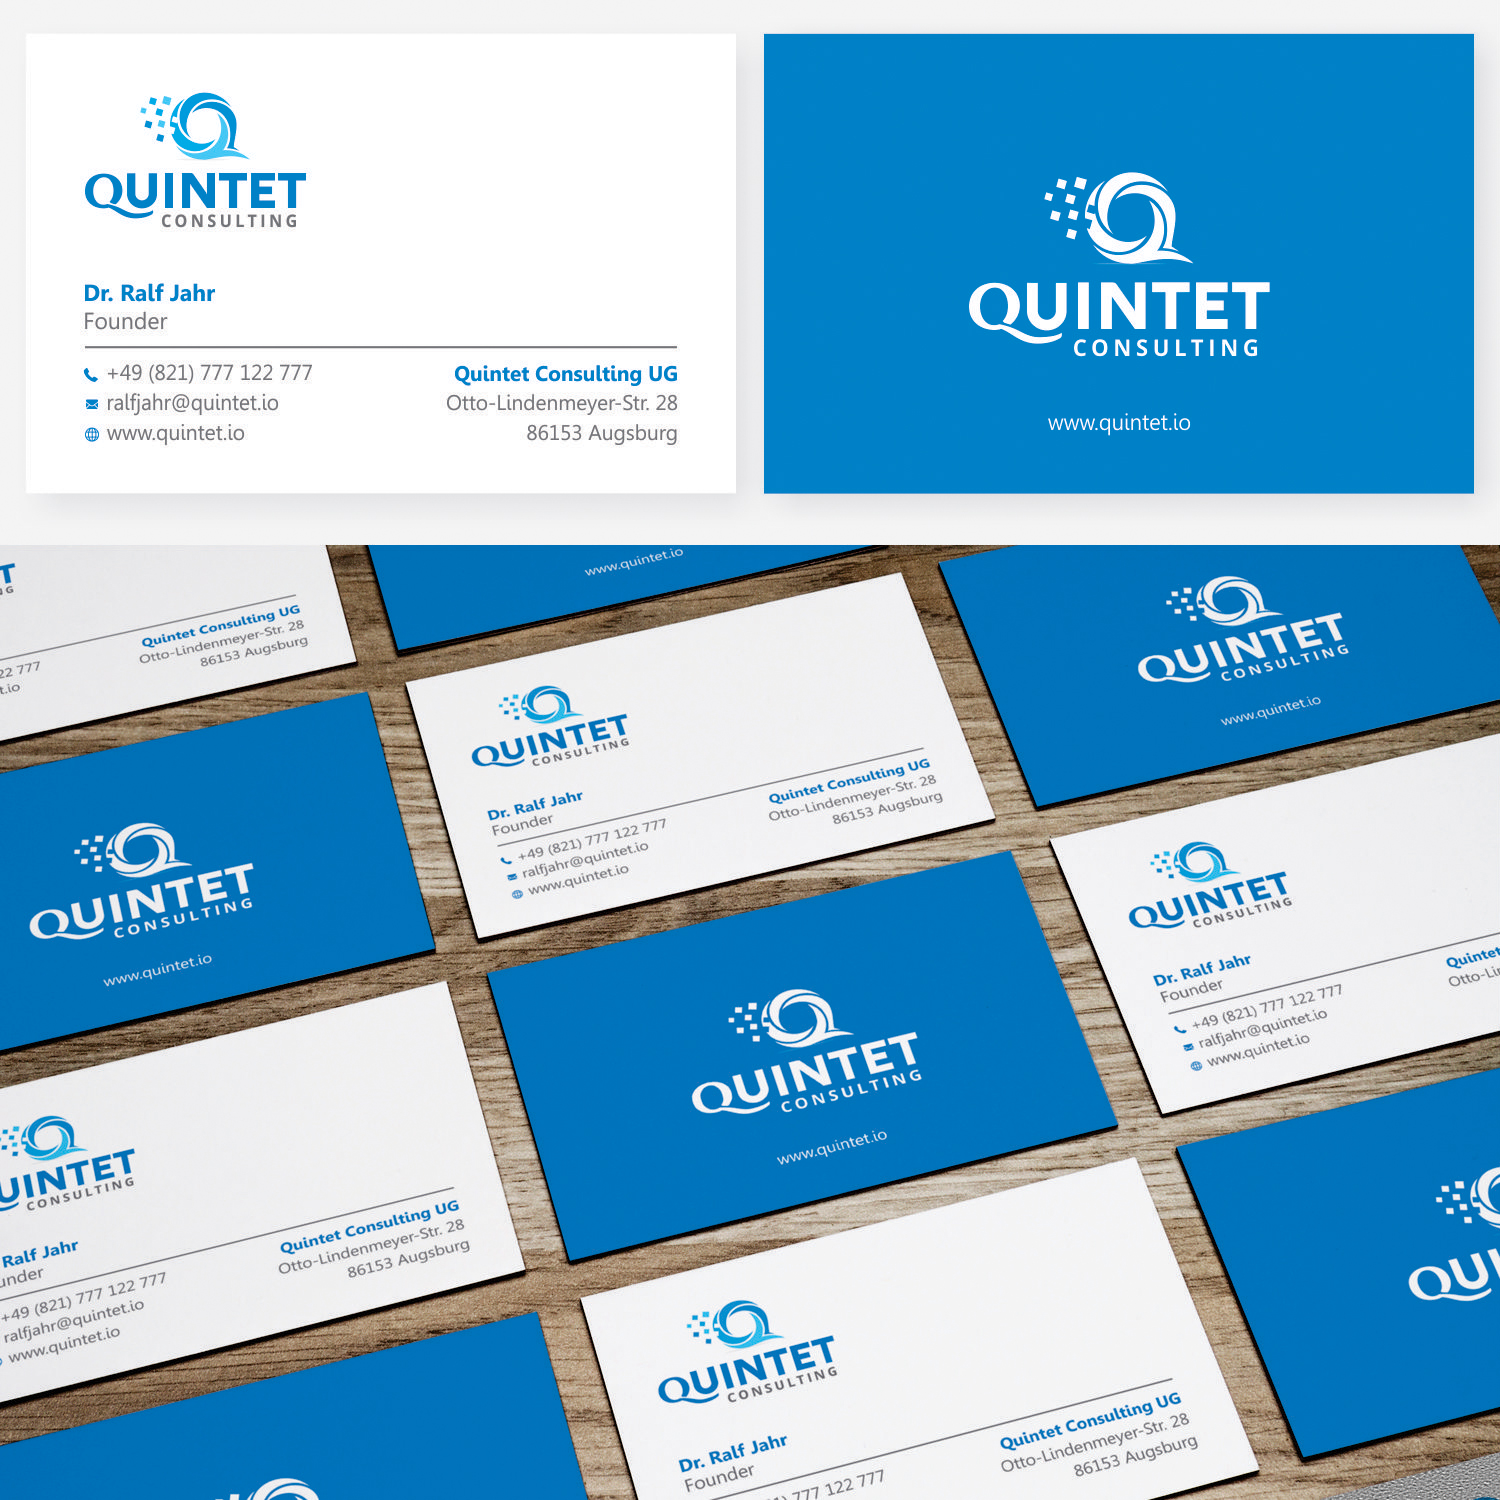 Elegant Serious Software Development Logo And Business Card Design For Quintet Consulting By Or16 Design 17705768